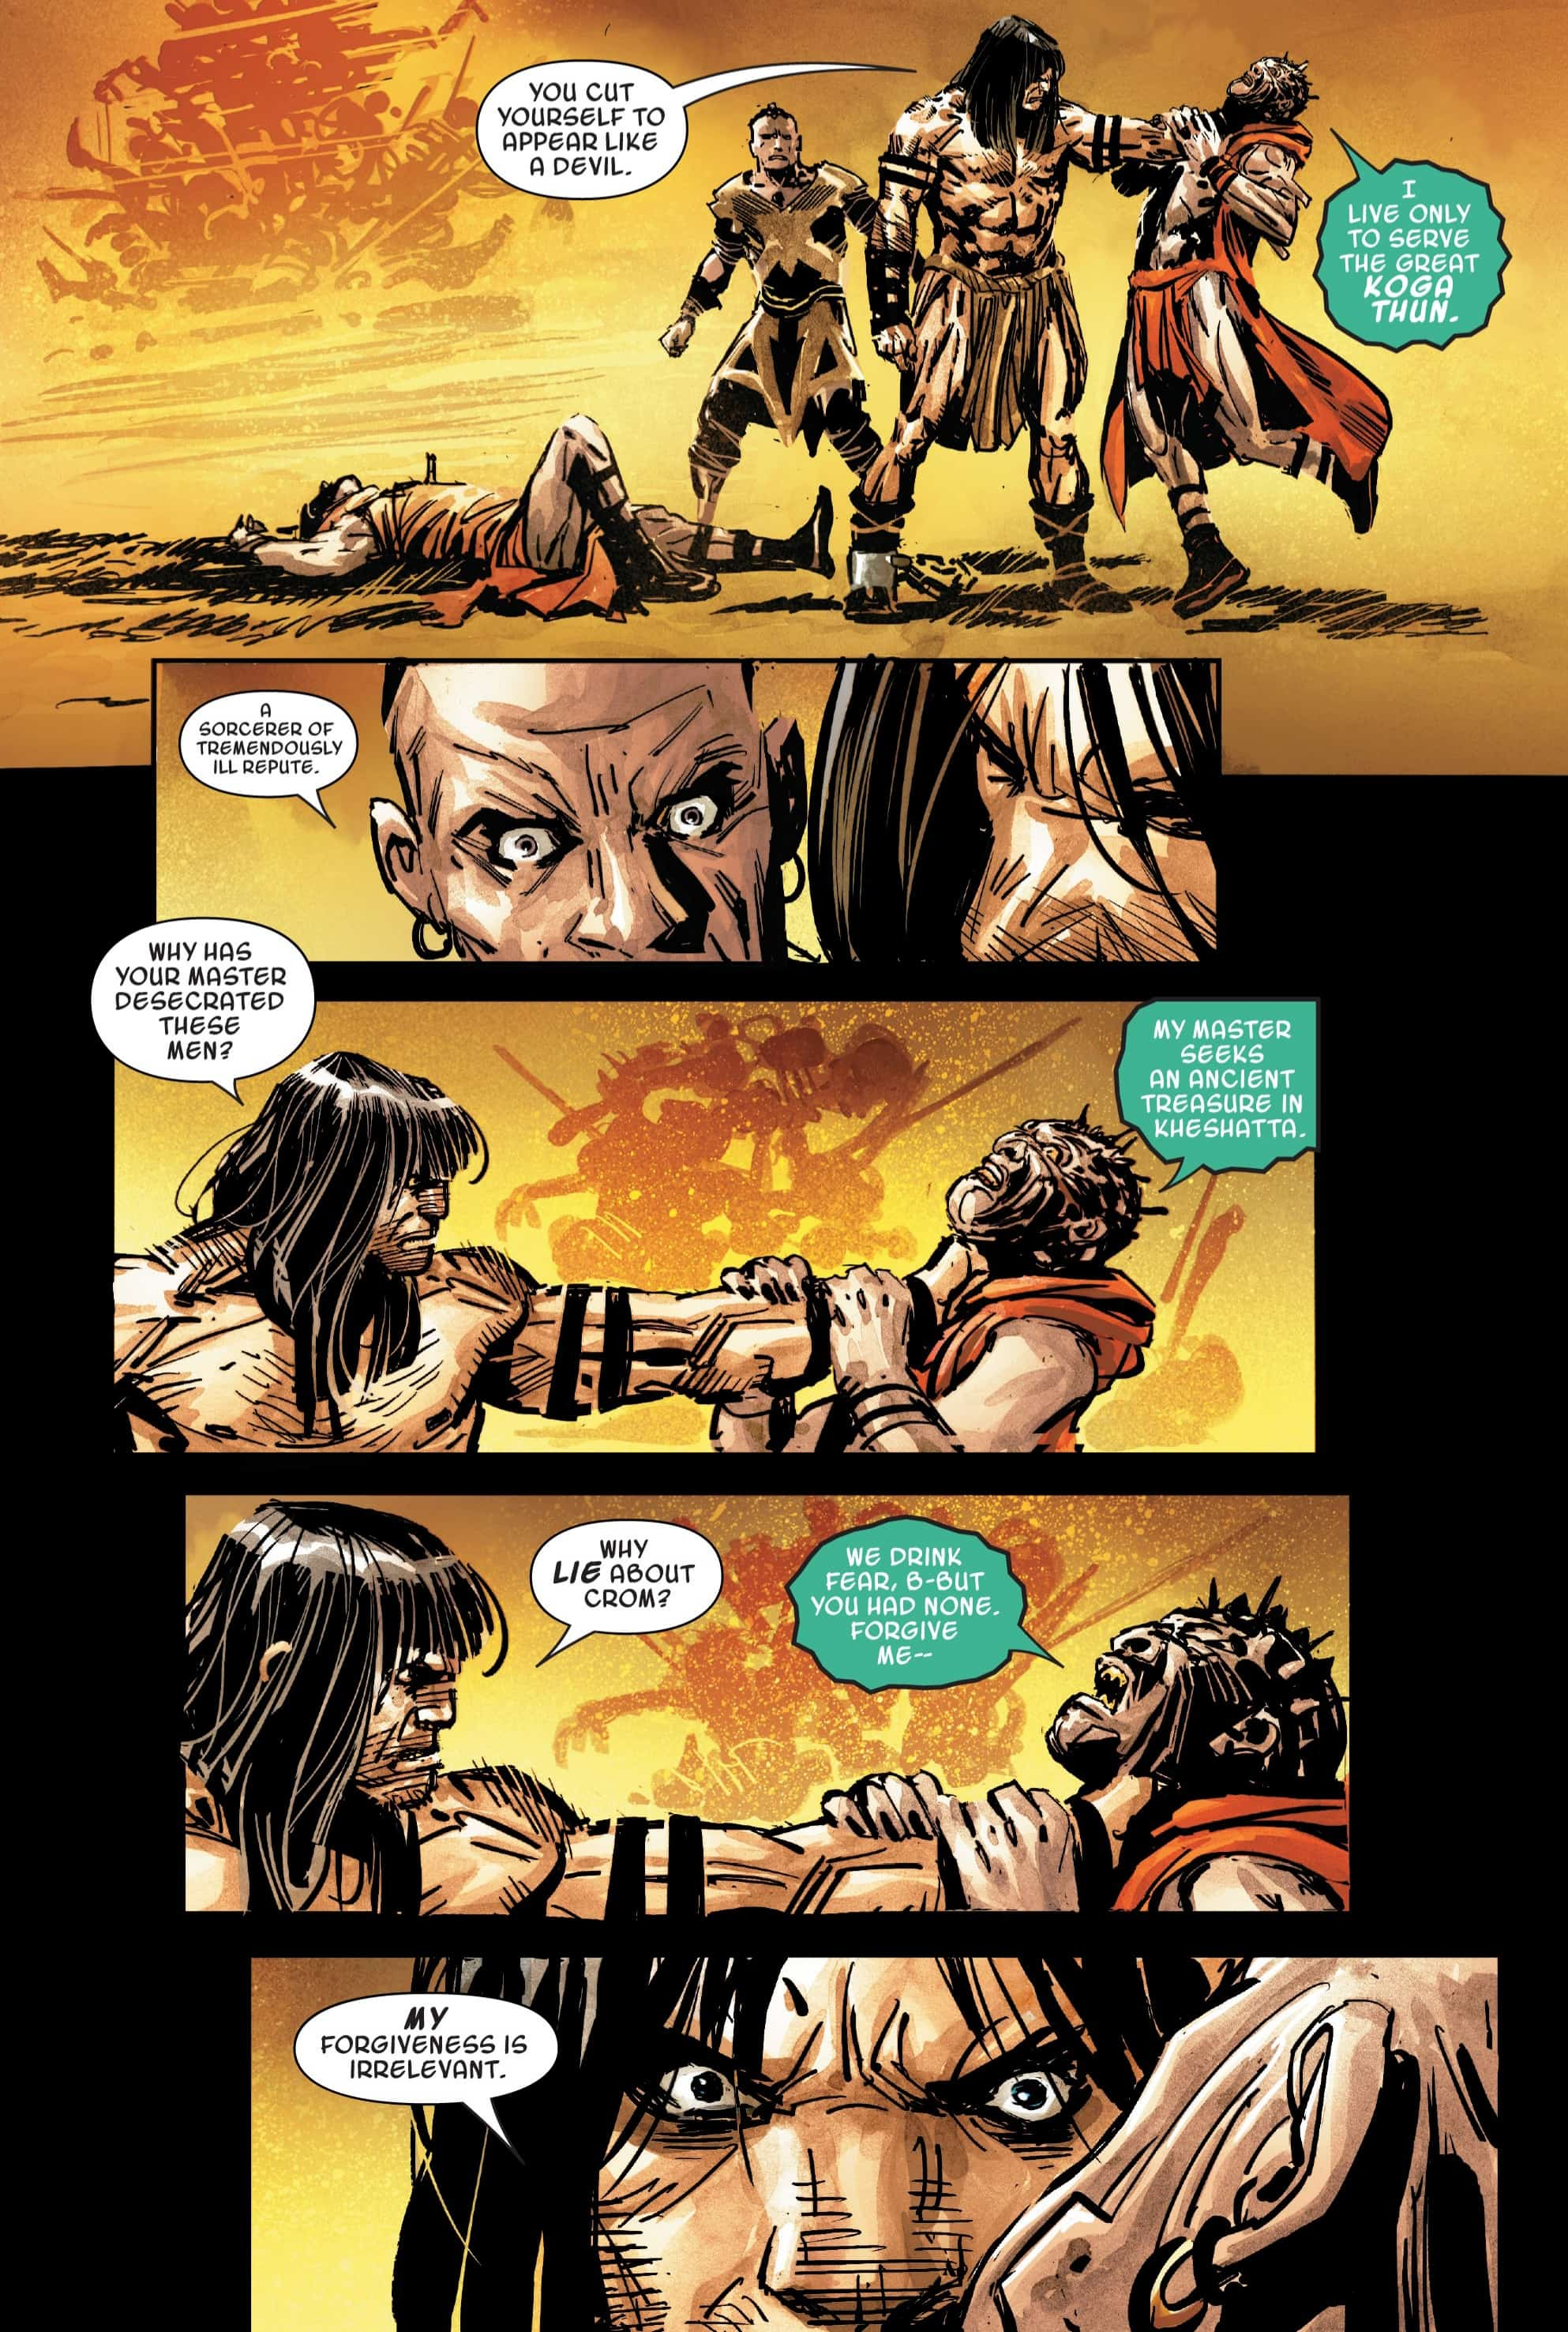 Savage Sword of Conan #2: Confronting the Cult - Comic Watch